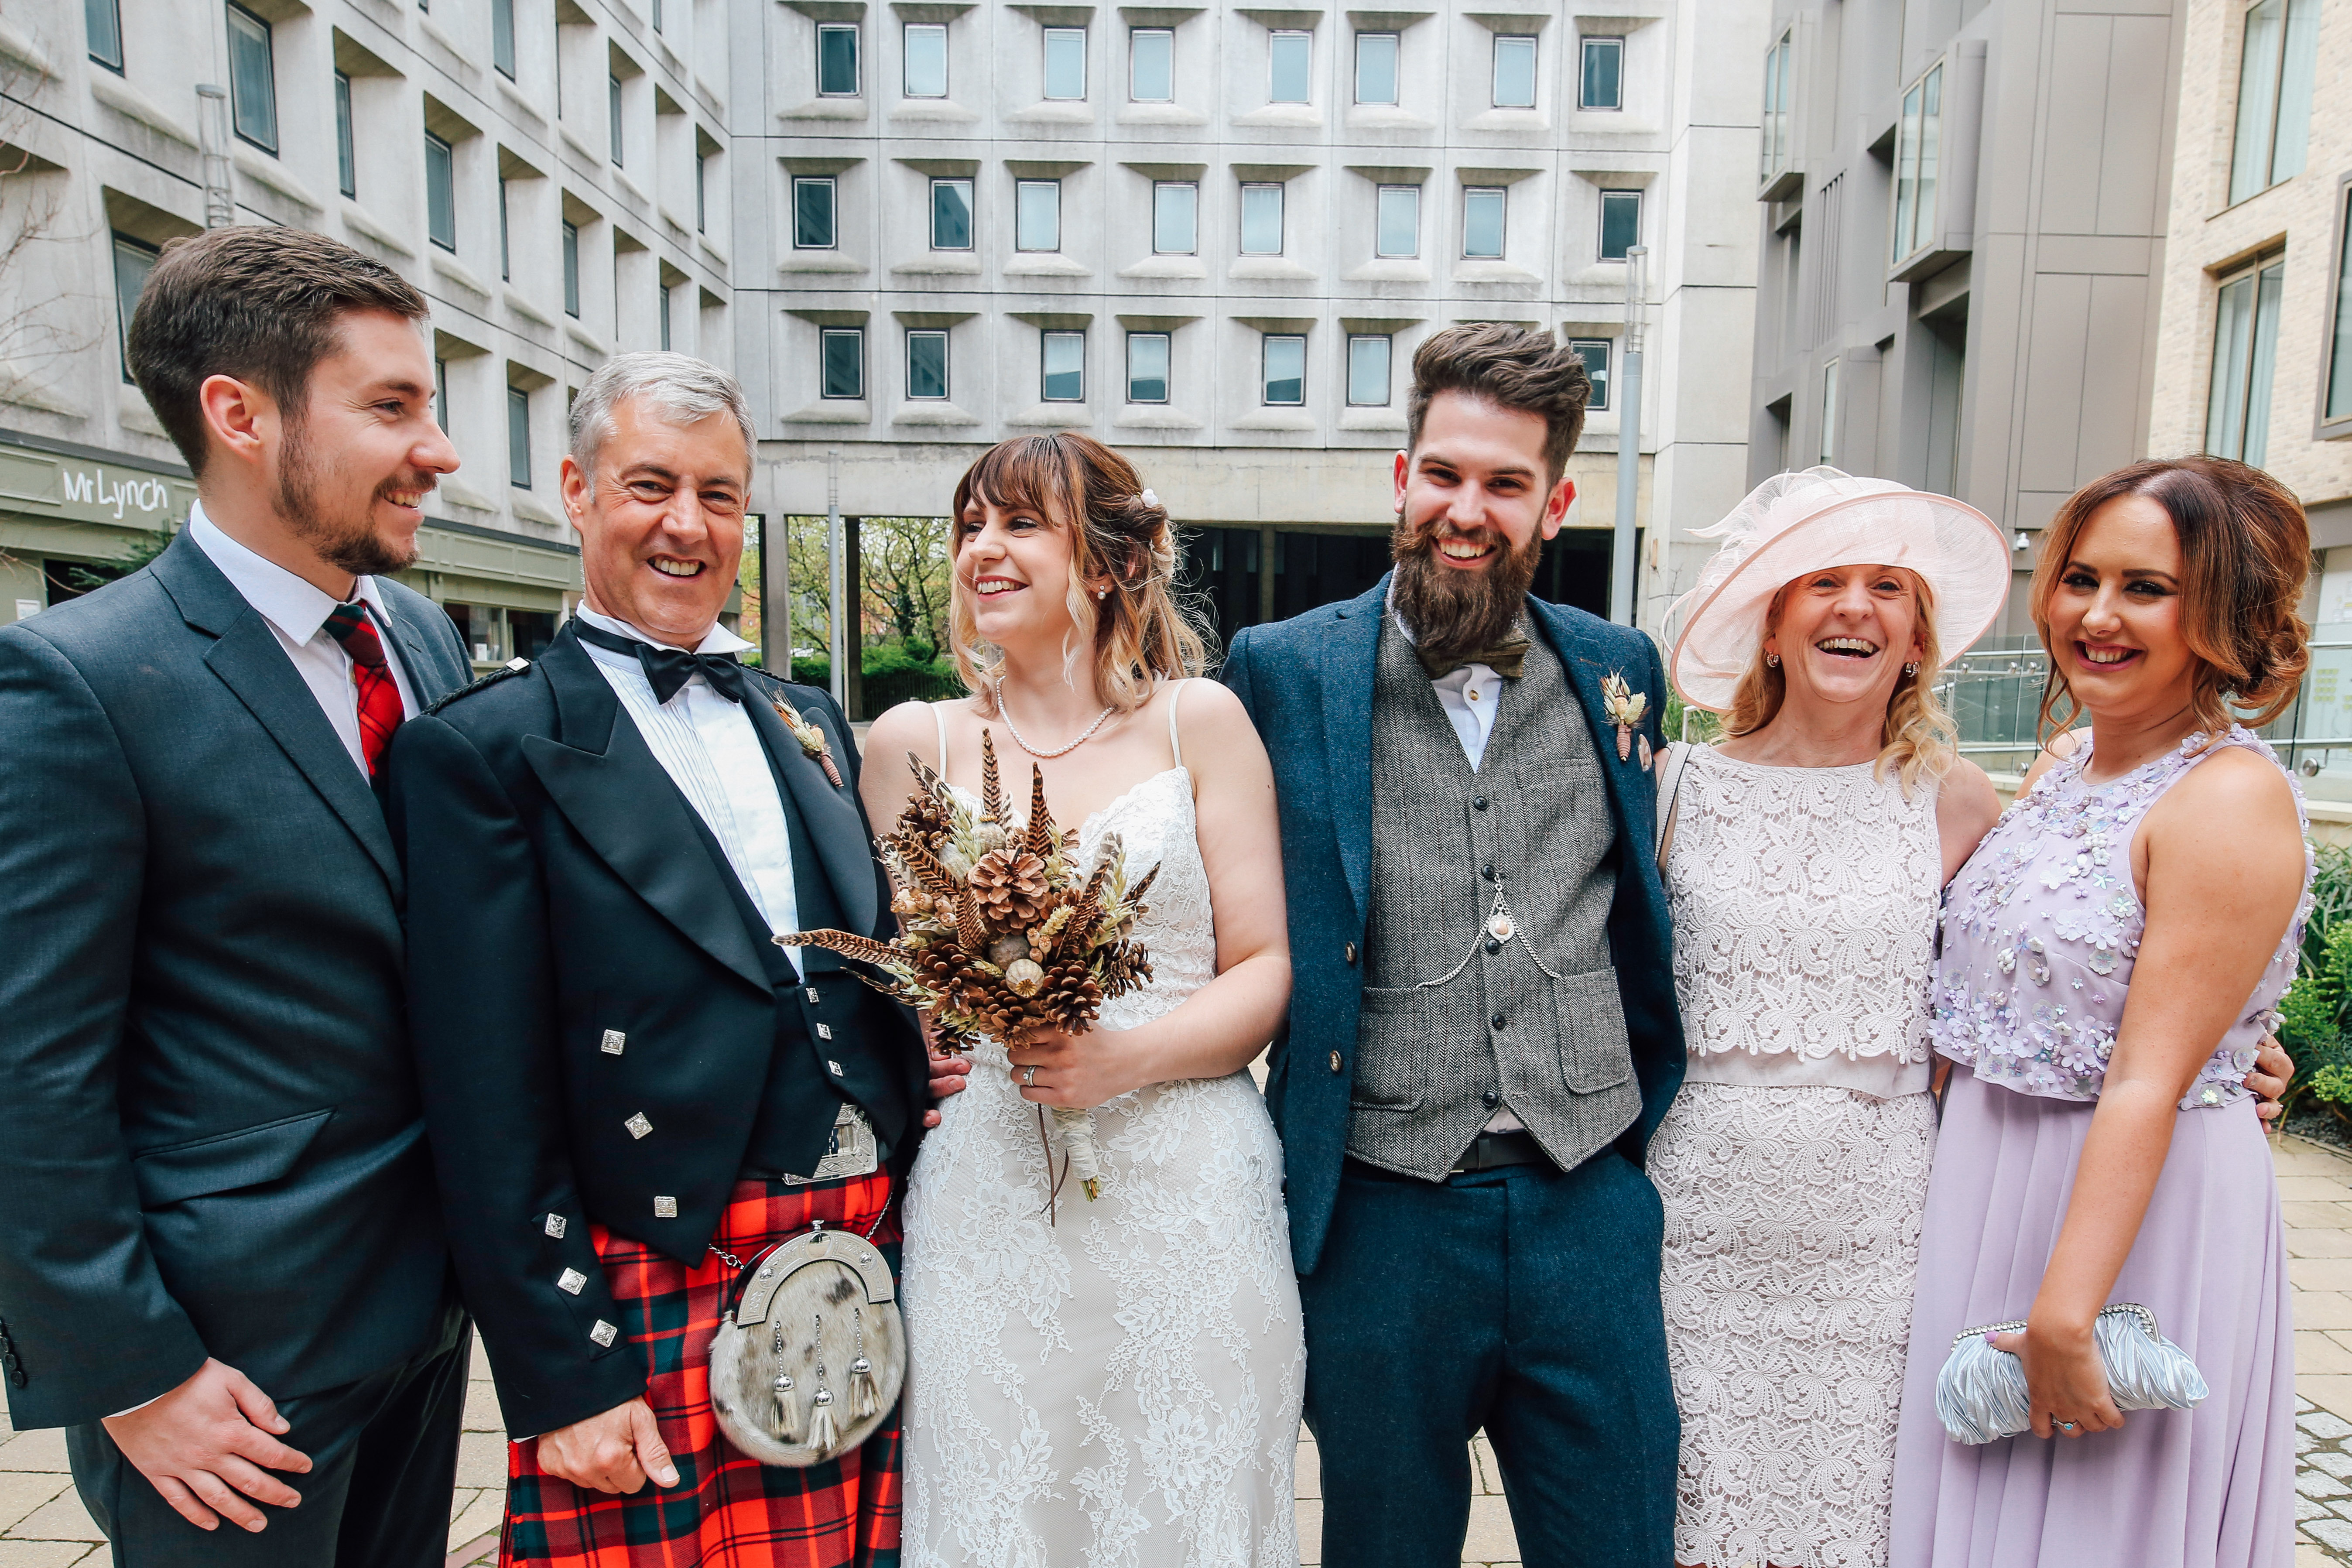 Fun Wedding Photography Newcastle As You Like It